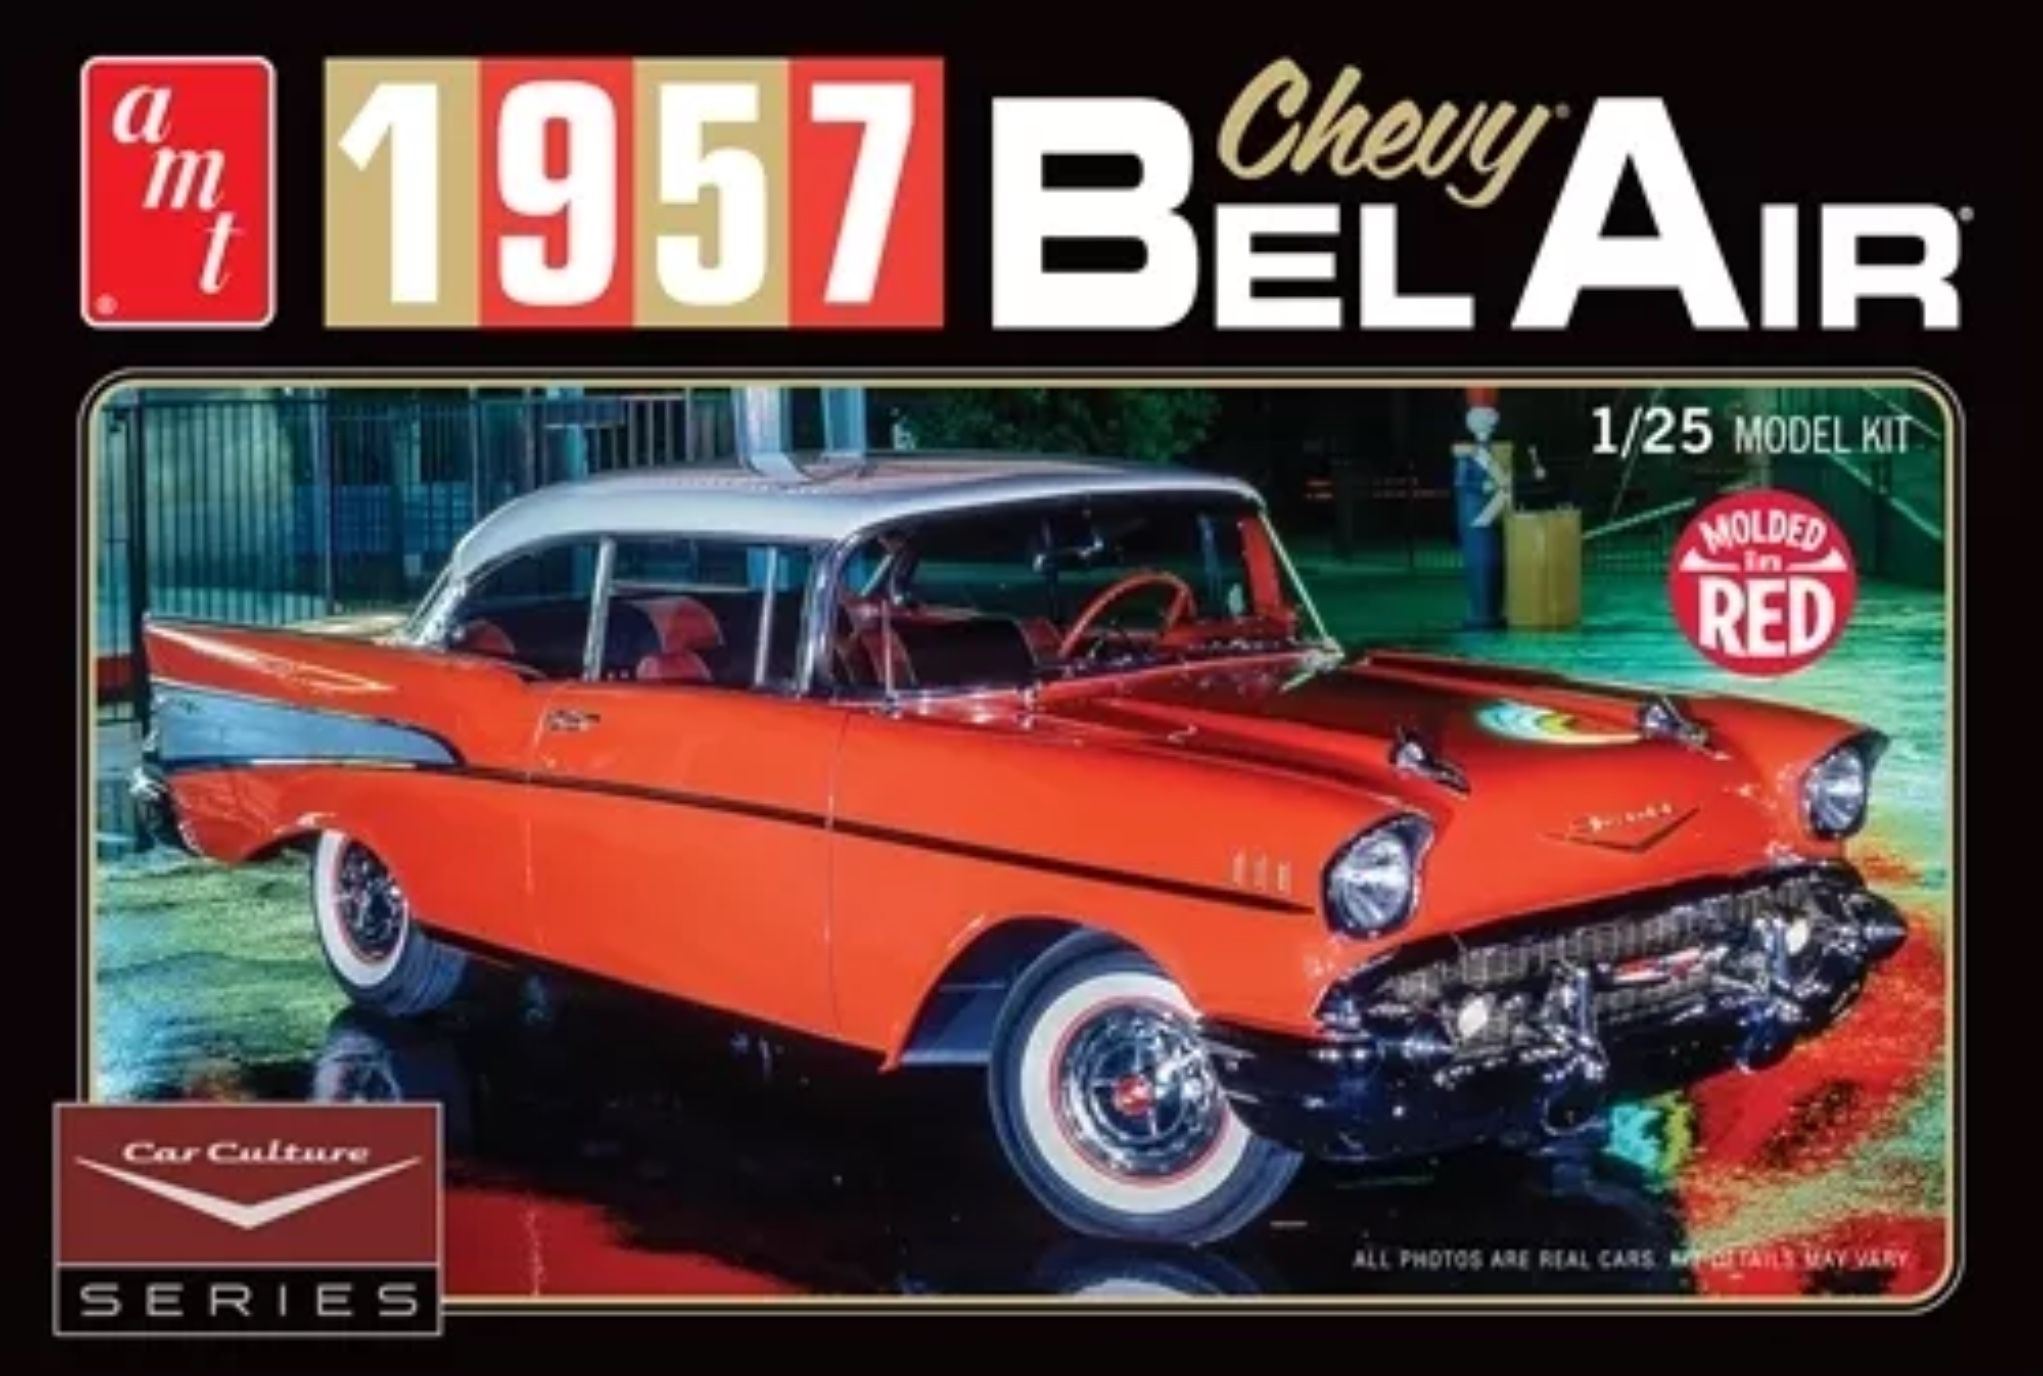 Pin By Tim On Model Kit Boxes Amt With Images Chevy Bel Air